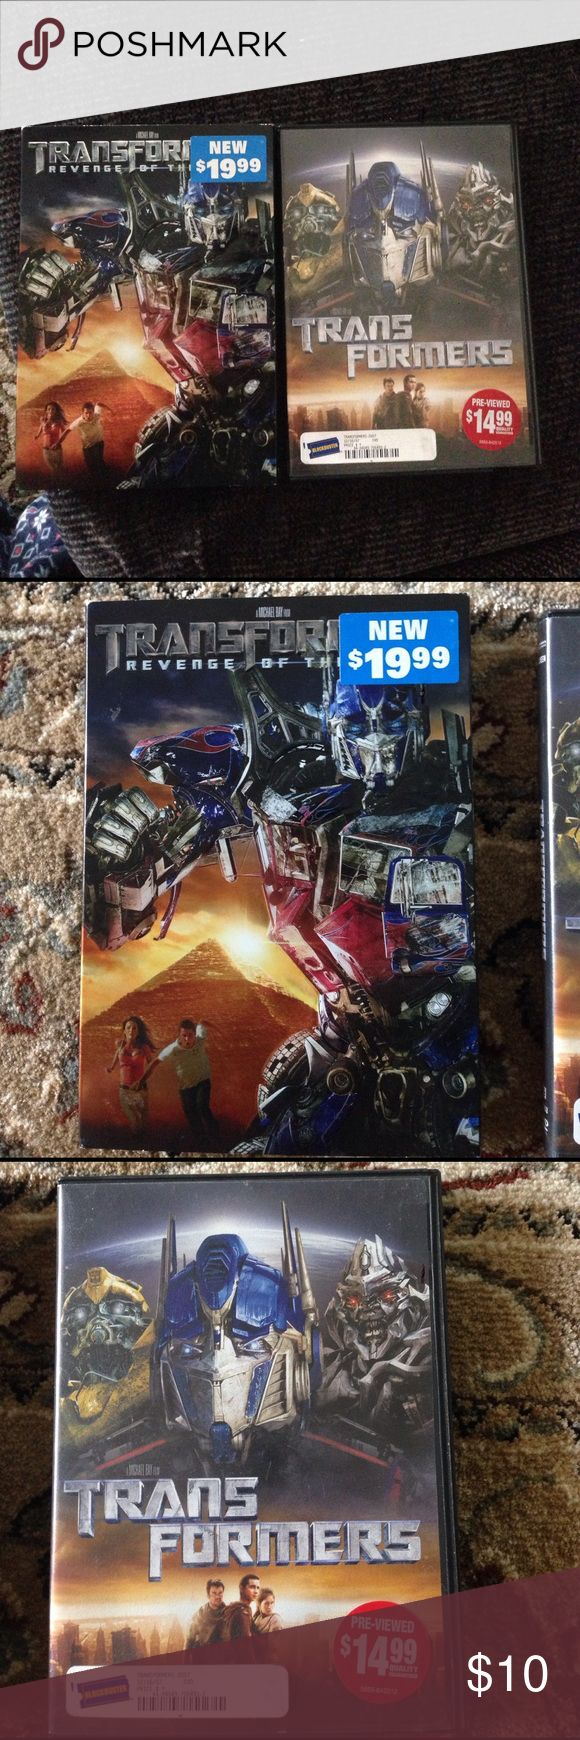 2 Transformers DVD's Transformers and Transformers Revenge of the Fallen. Both have cases. Other